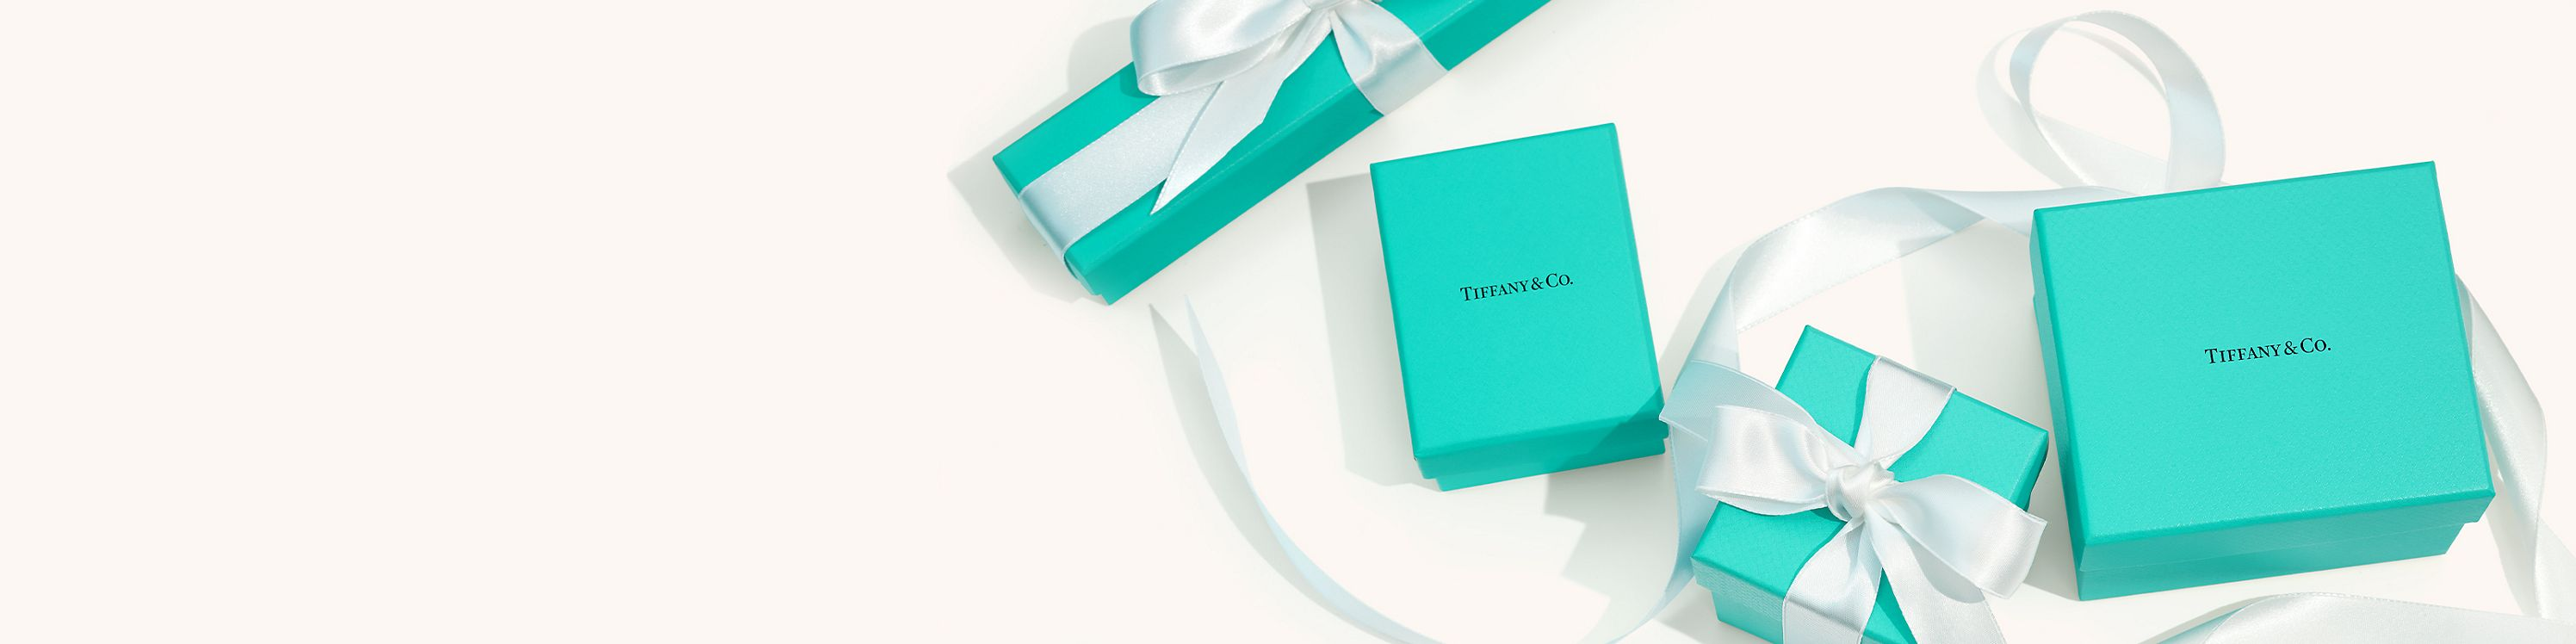 Tiffany & Co. Gifts €500 & Under